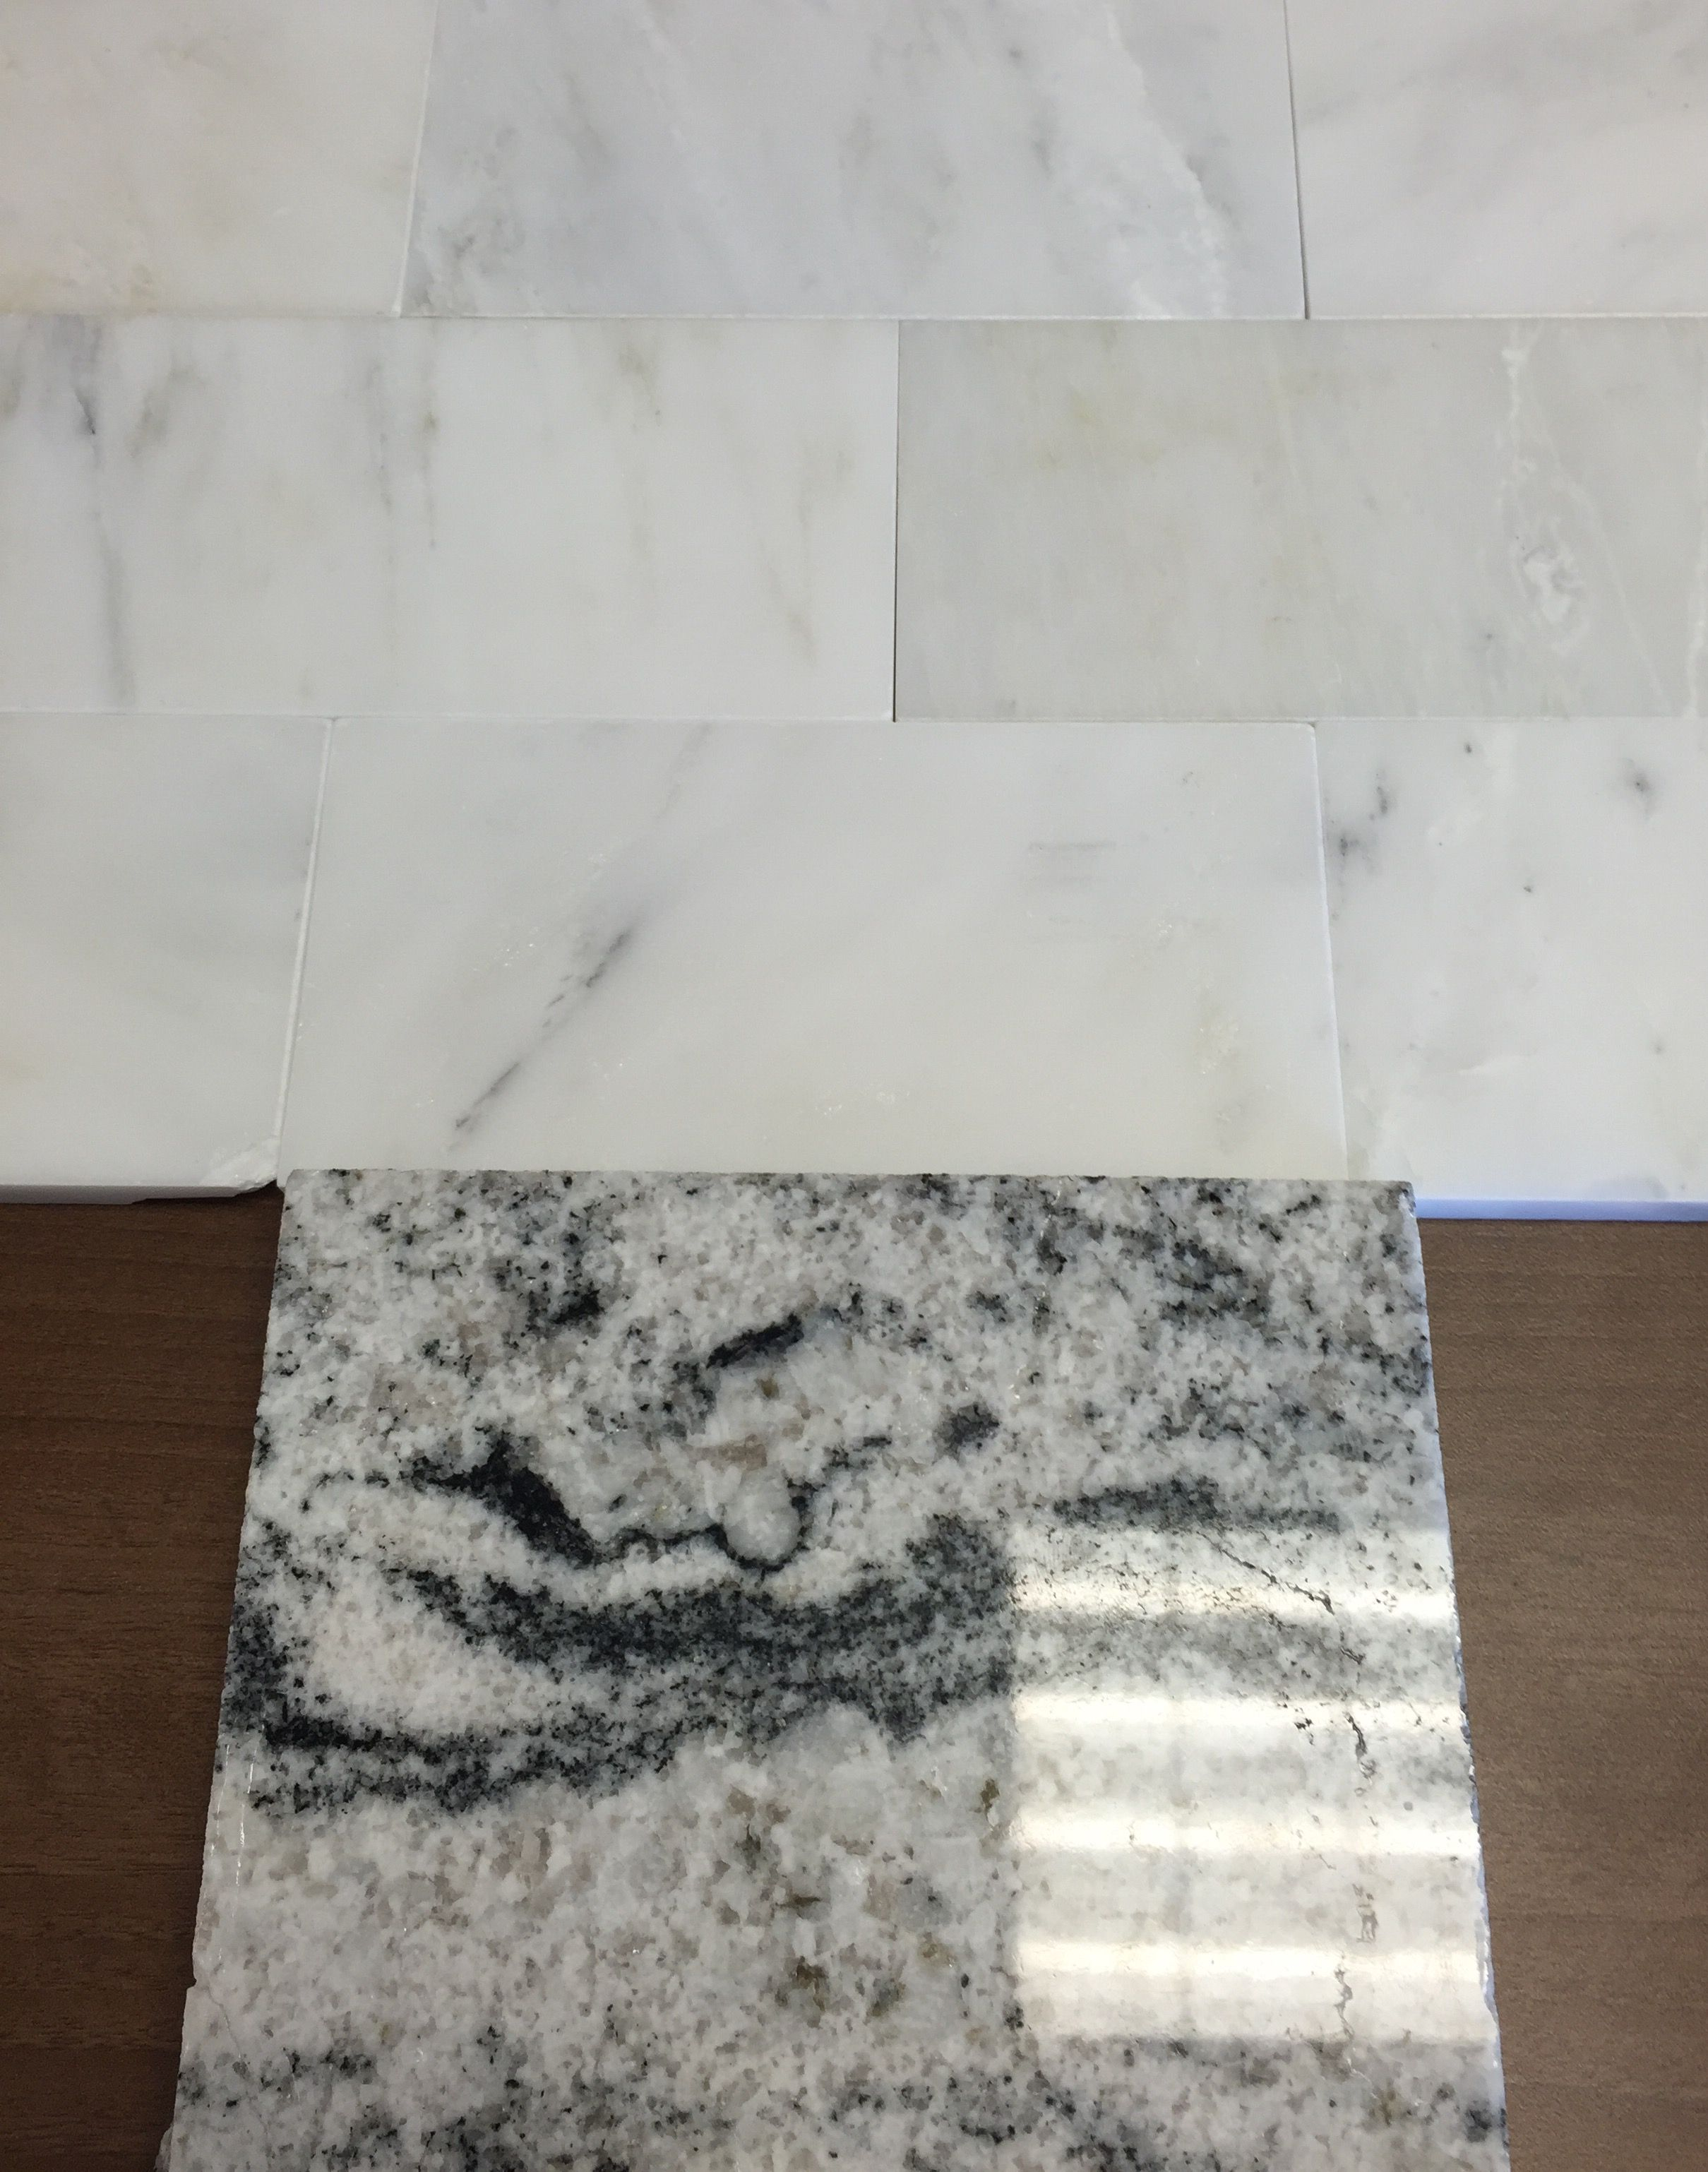 Honed dynasty marble subway tiles for backsplash with viscon honed dynasty marble subway tiles for backsplash with viscon white granite for dailygadgetfo Choice Image